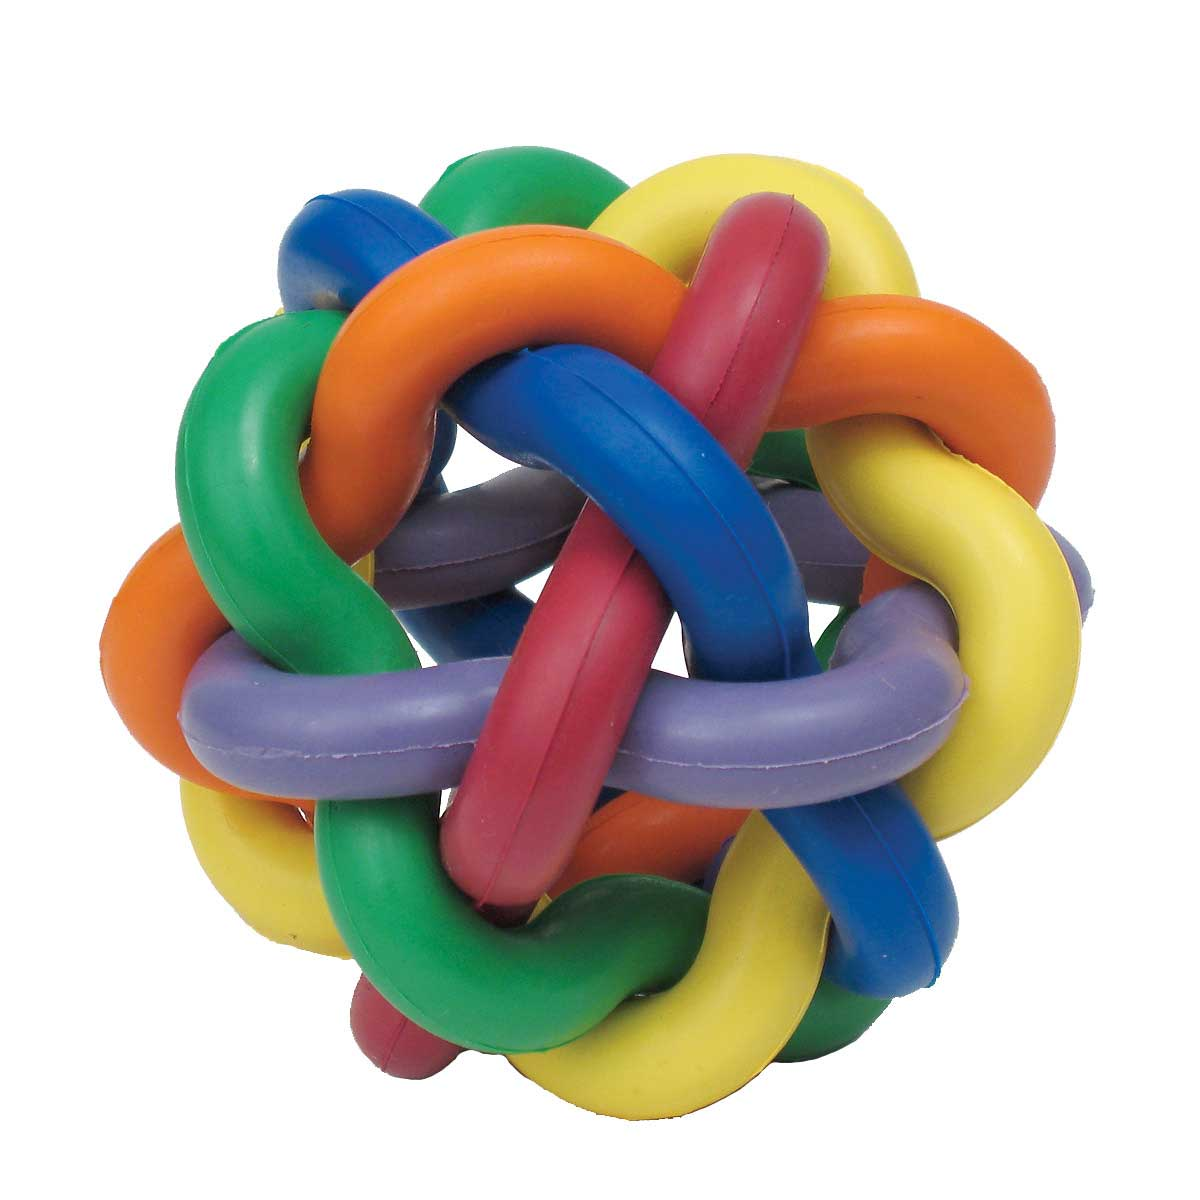 Large Nobbly Wobbly Ball Toy for Dogs - 4 inch